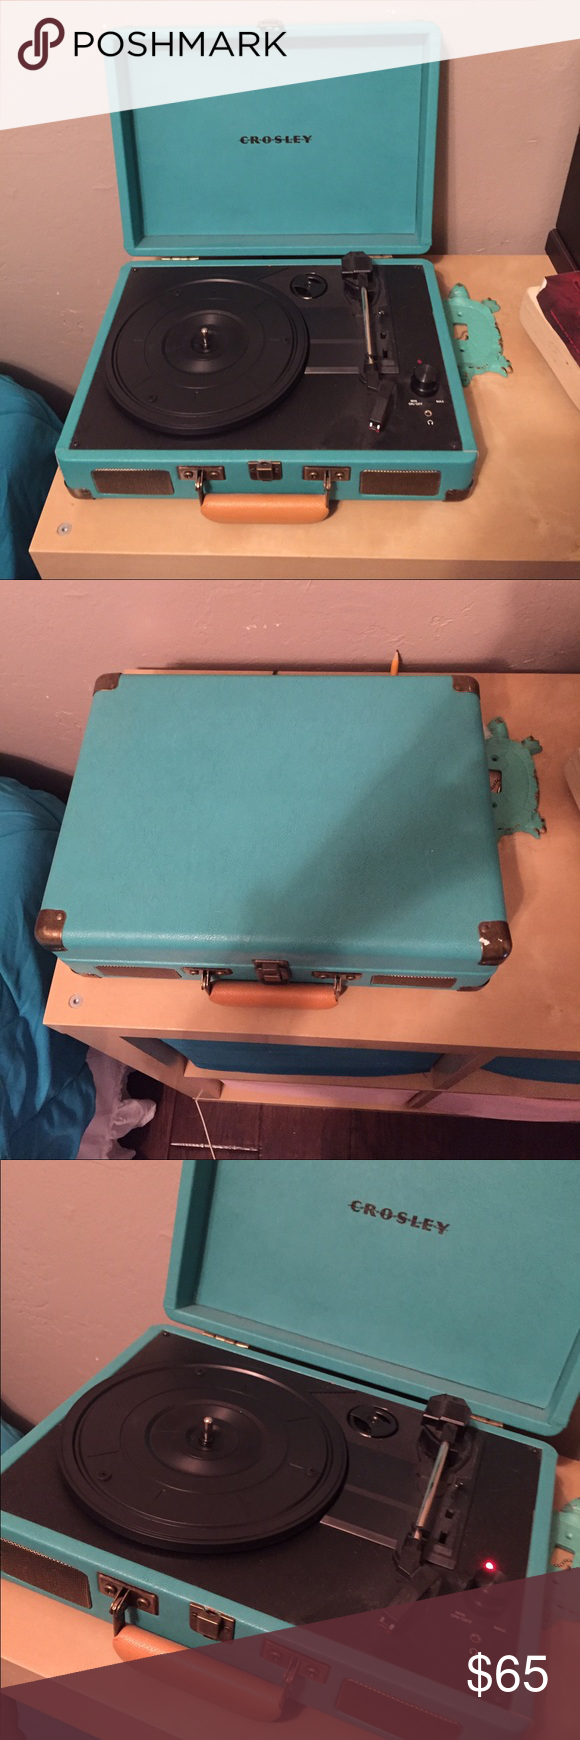 Crosley turntable/record player Teal record player! Brand new! Other